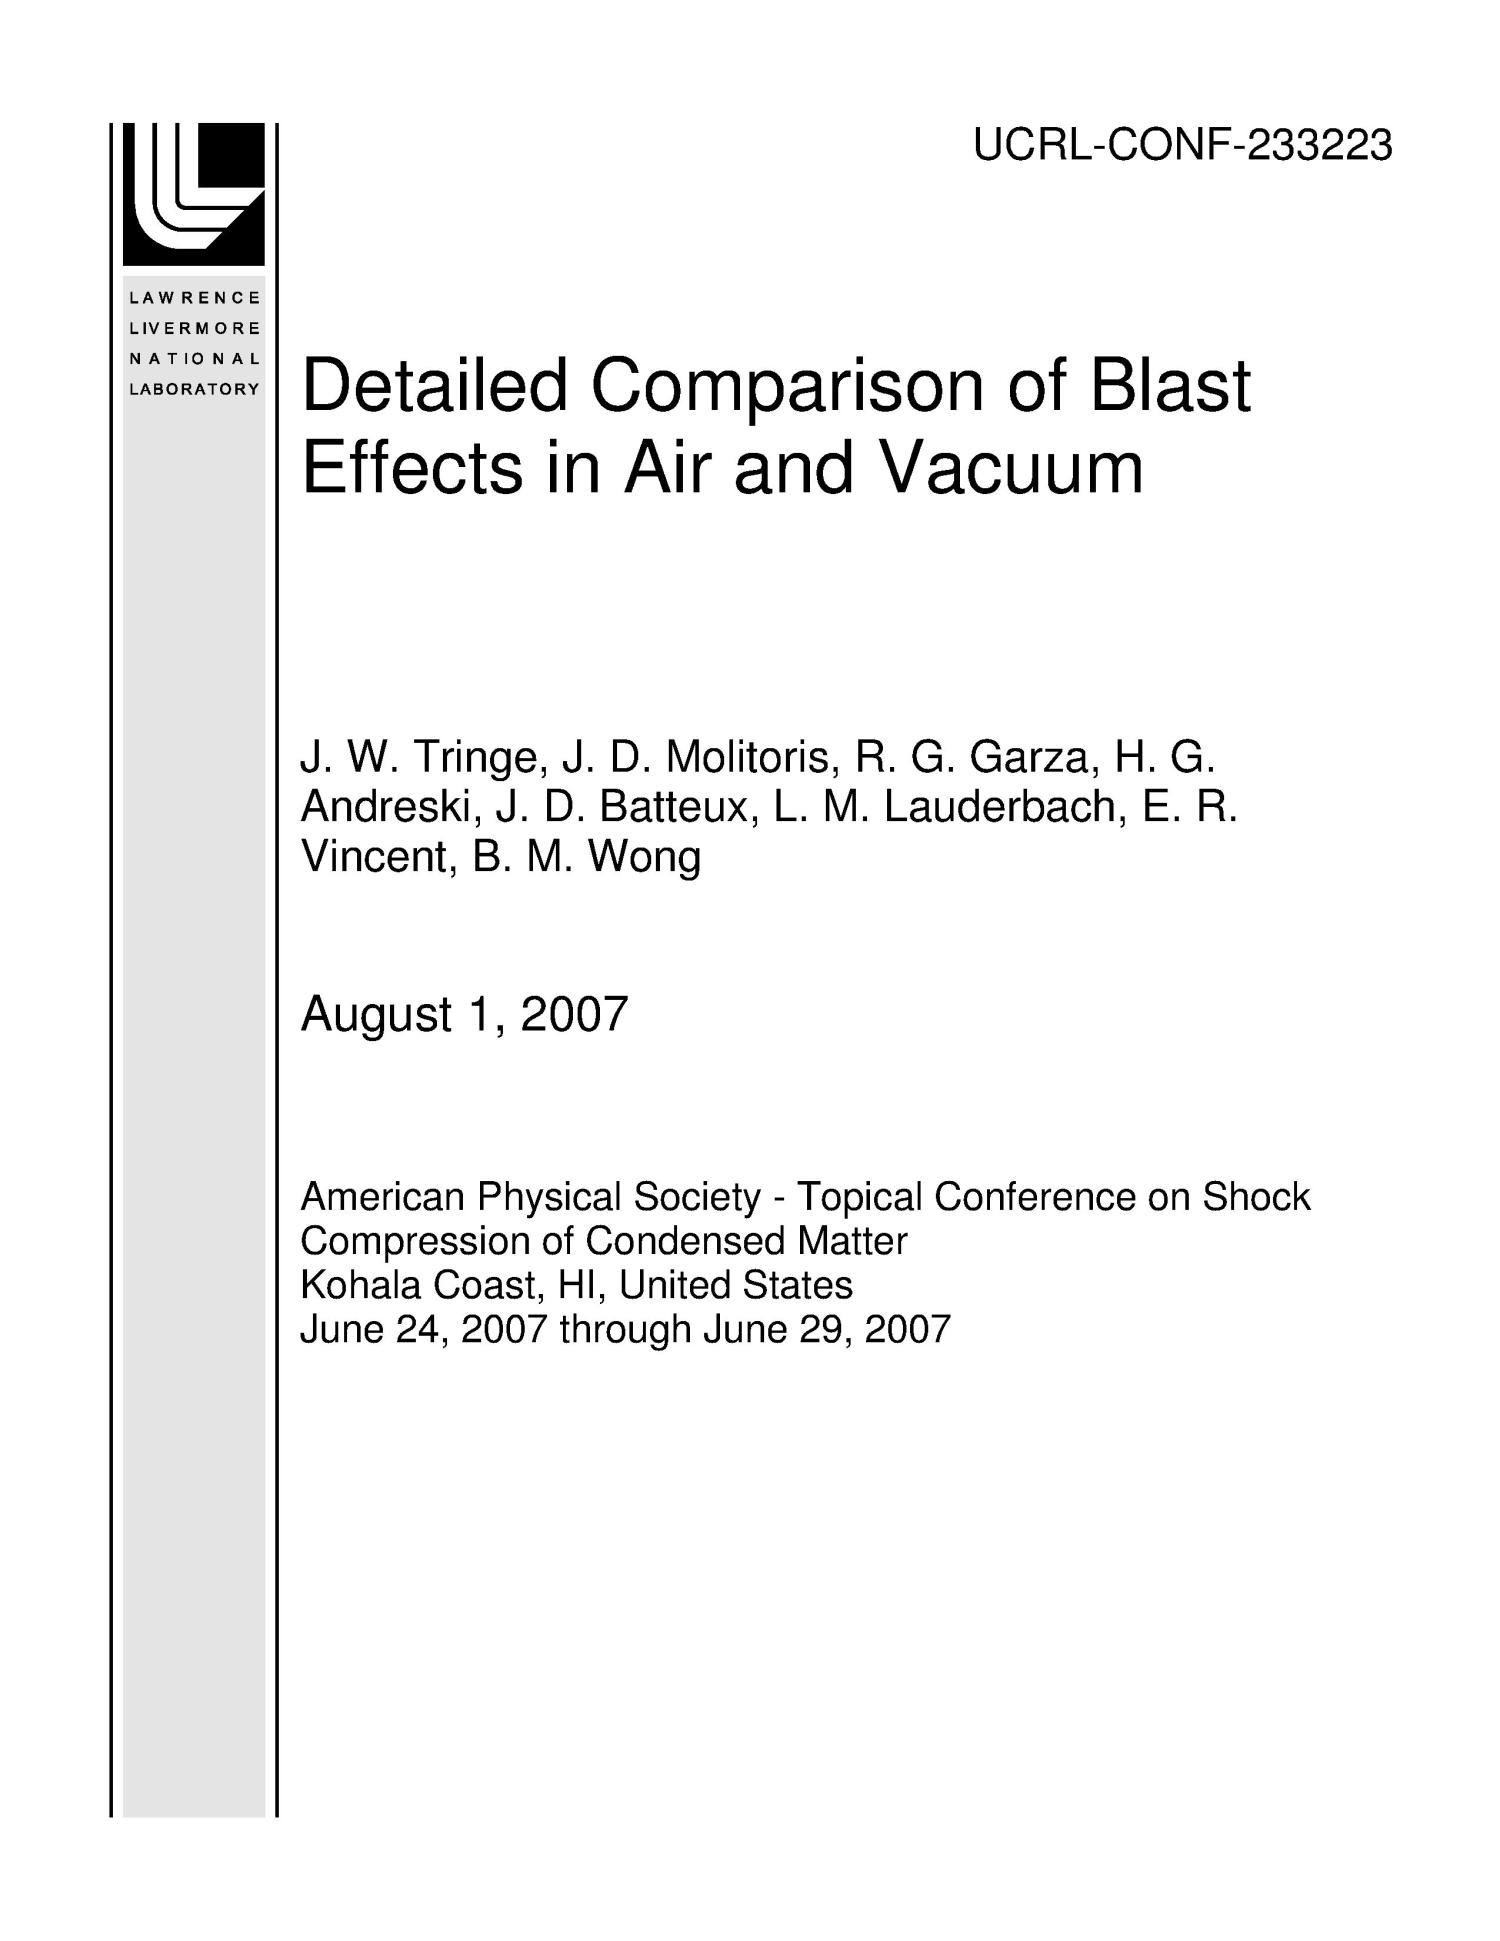 Detailed Comparison of Blast Effects in Air and Vacuum                                                                                                      [Sequence #]: 1 of 10